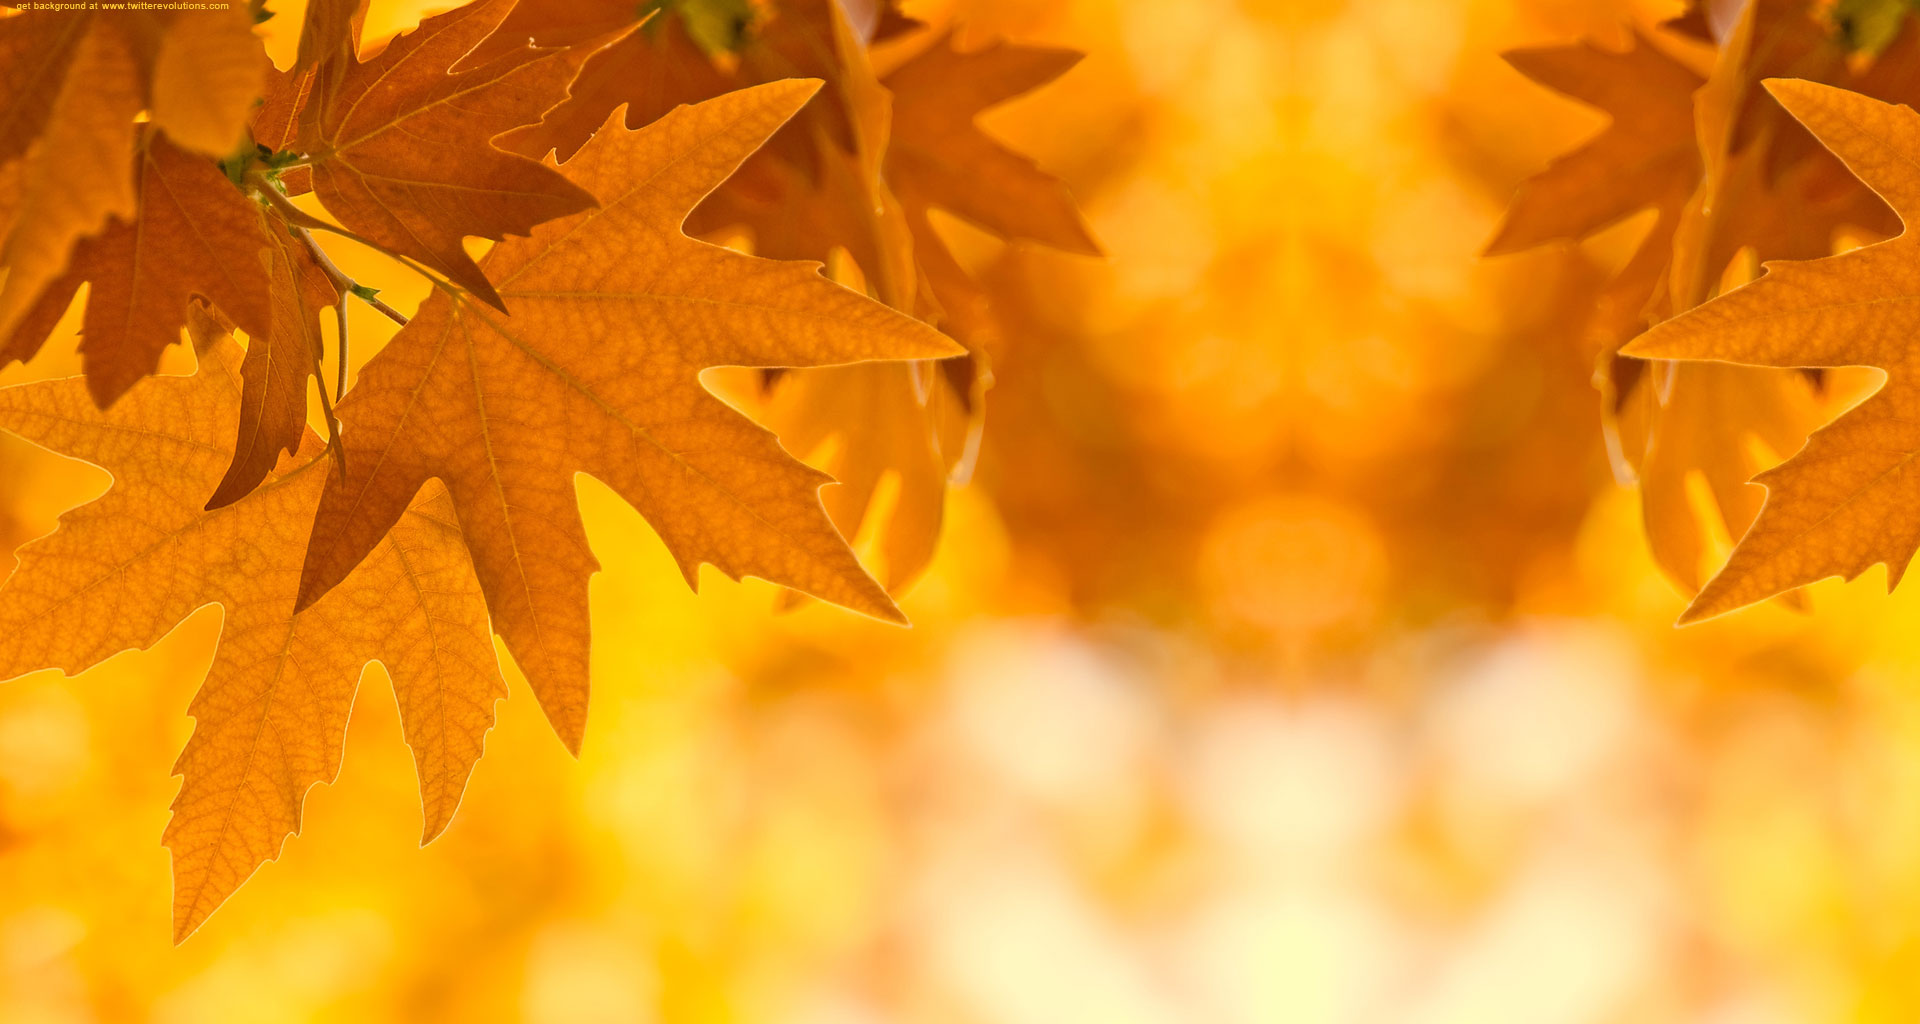 Autumn Leaves Background Clipart.